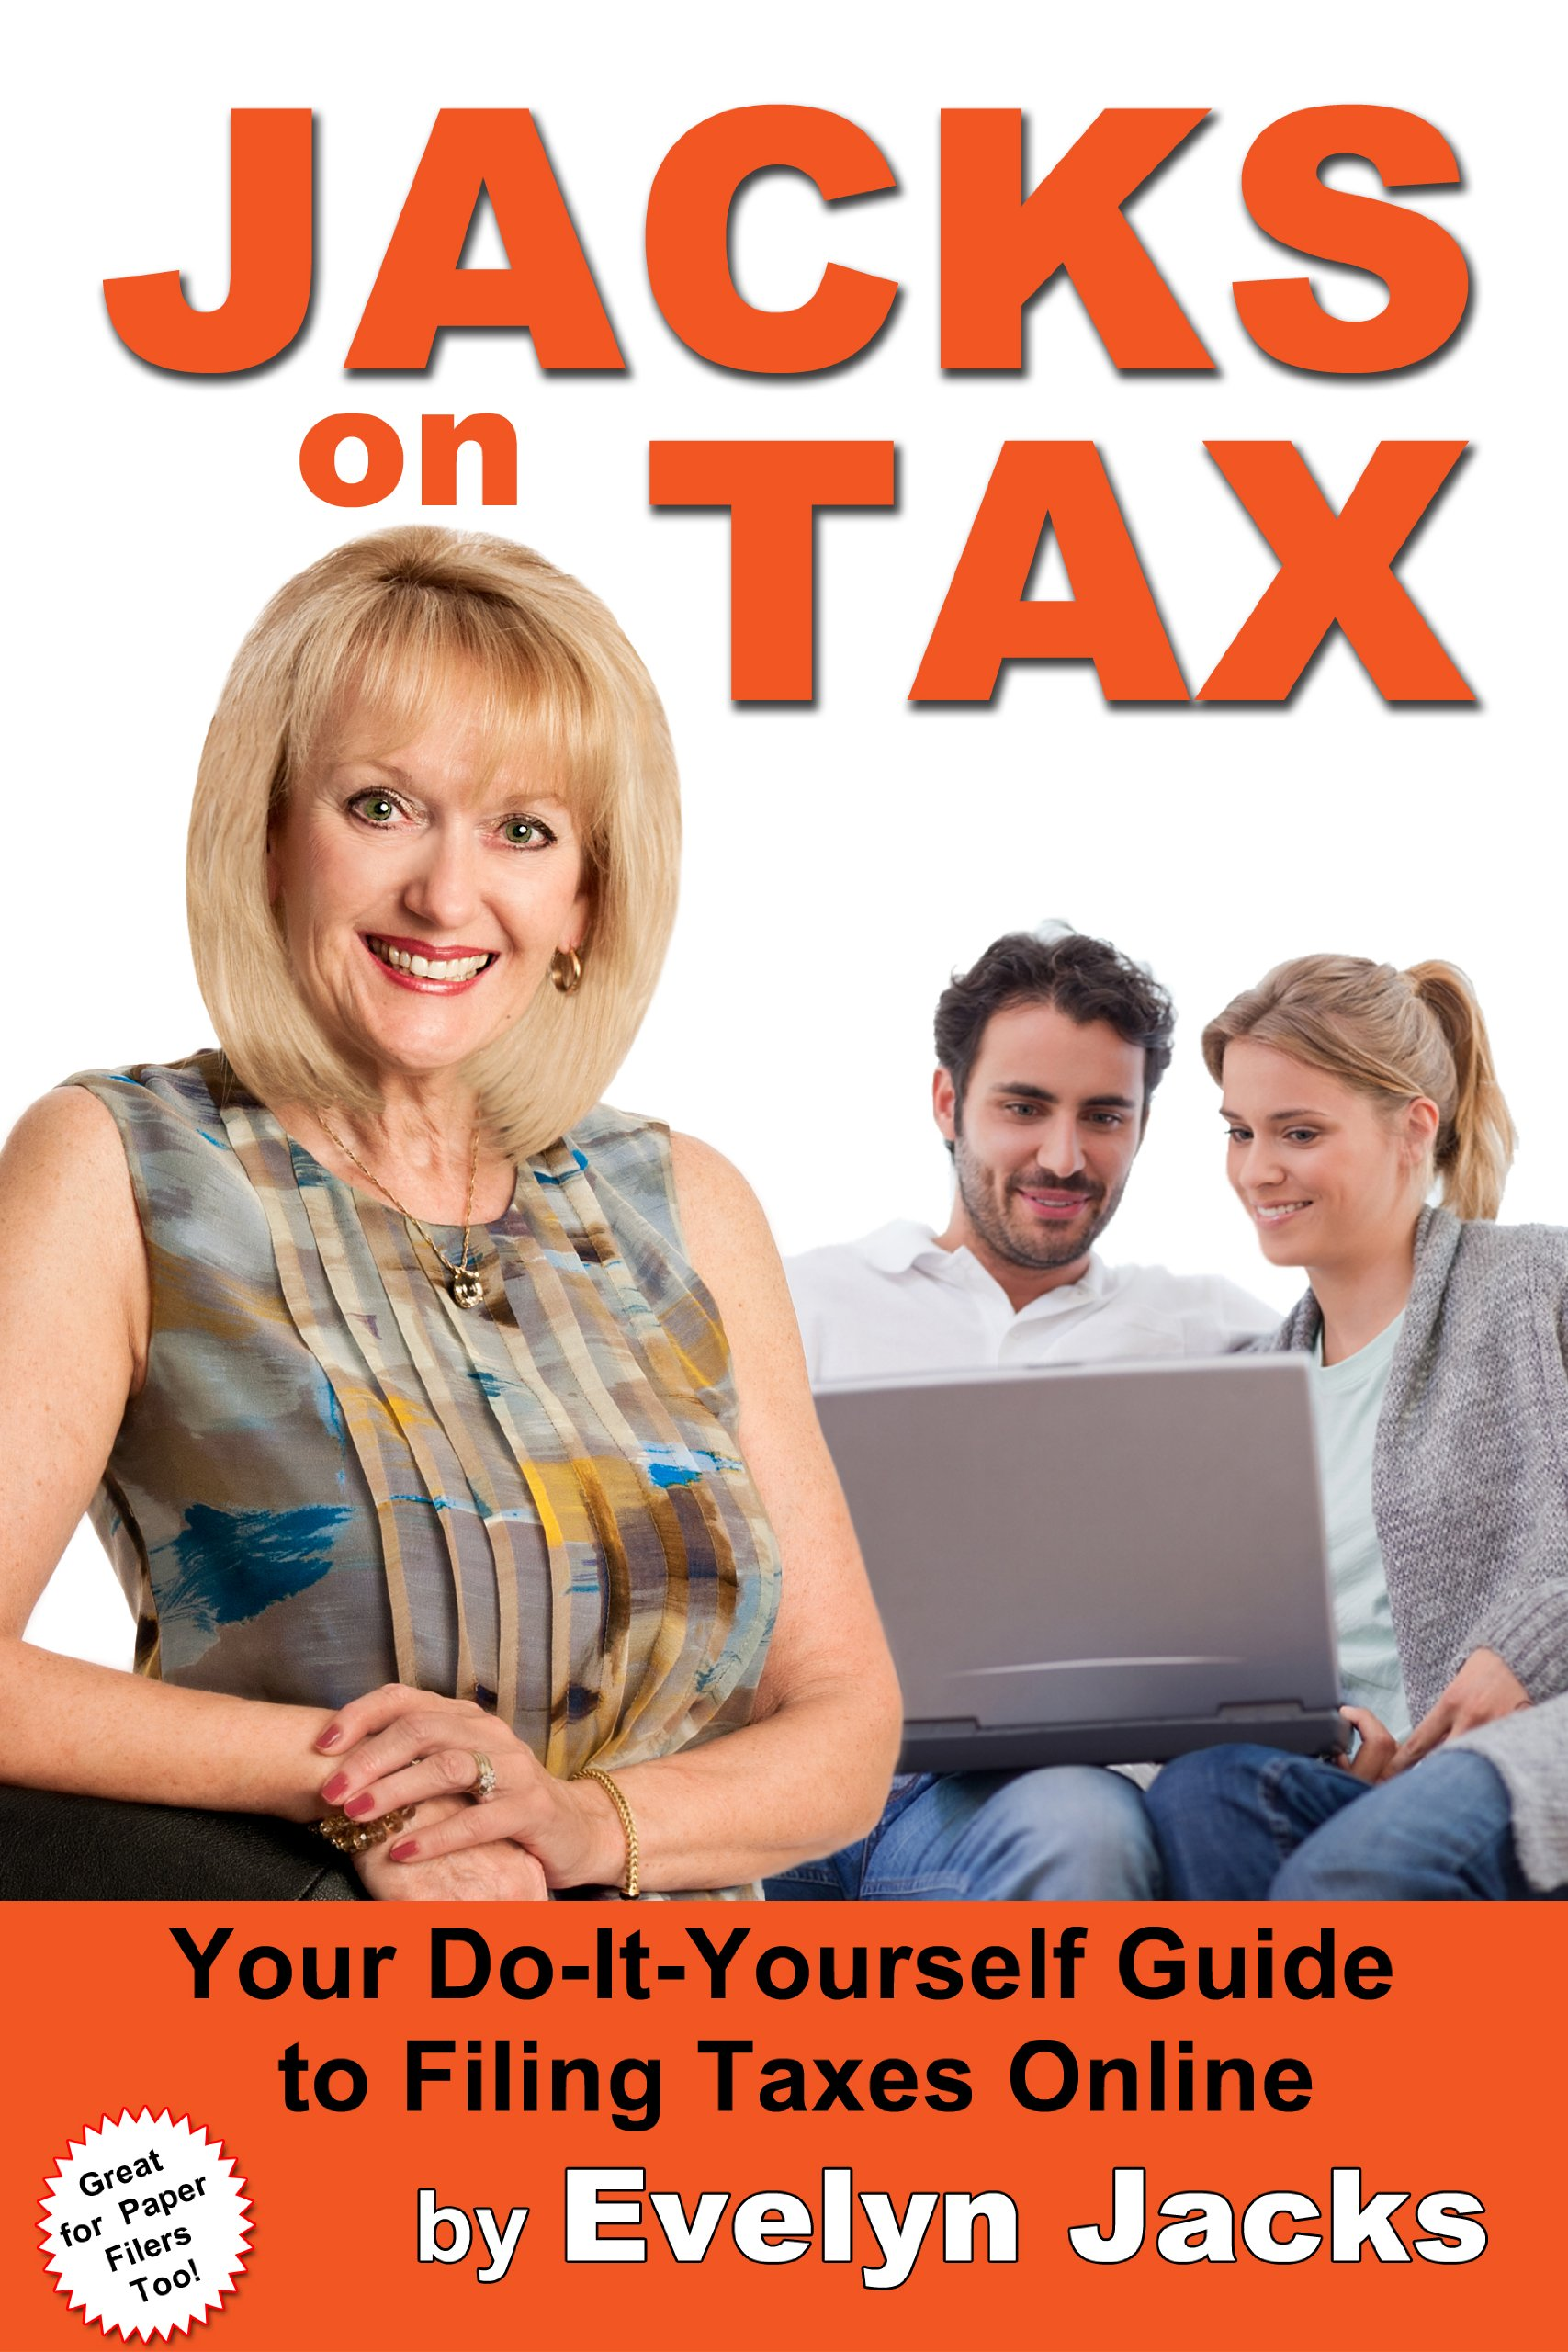 Jacks on tax your do it yourself guide to filing taxes online jacks on tax your do it yourself guide to filing taxes online evelyn jacks 9781897526972 books amazon solutioingenieria Image collections